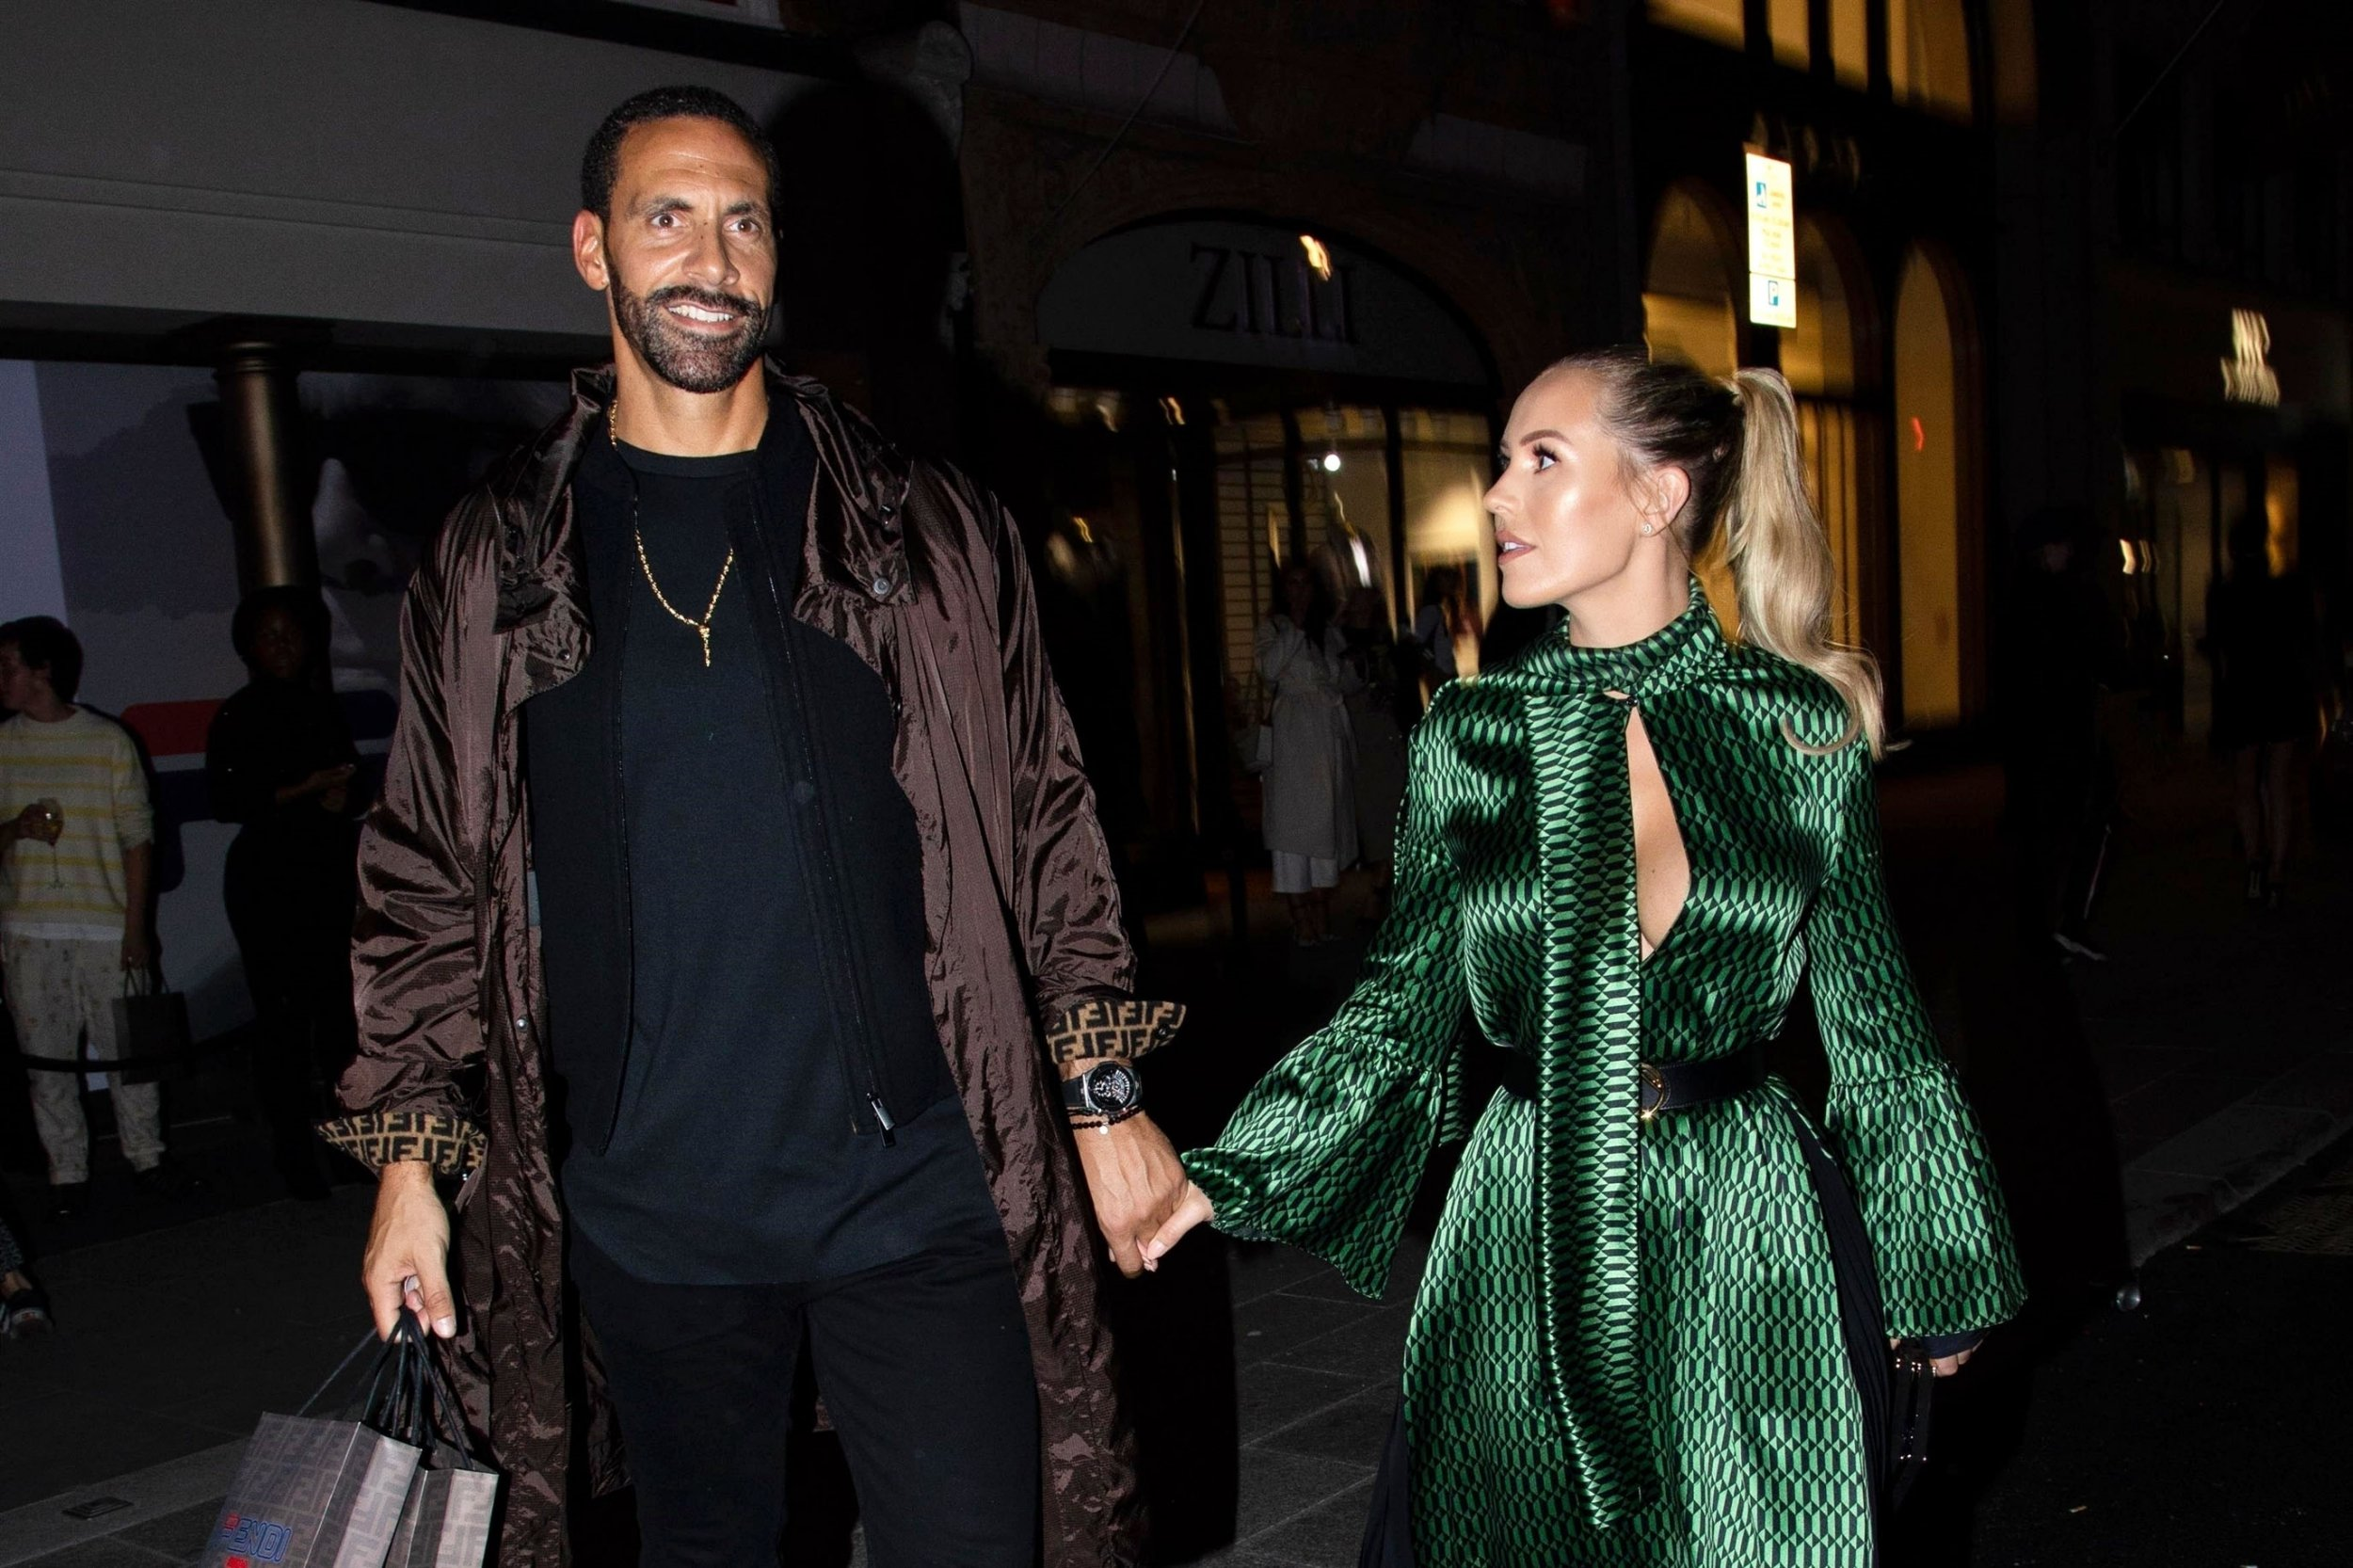 Rio Ferdinand plays the doting boyfriend to Kate Wright on loved up date night